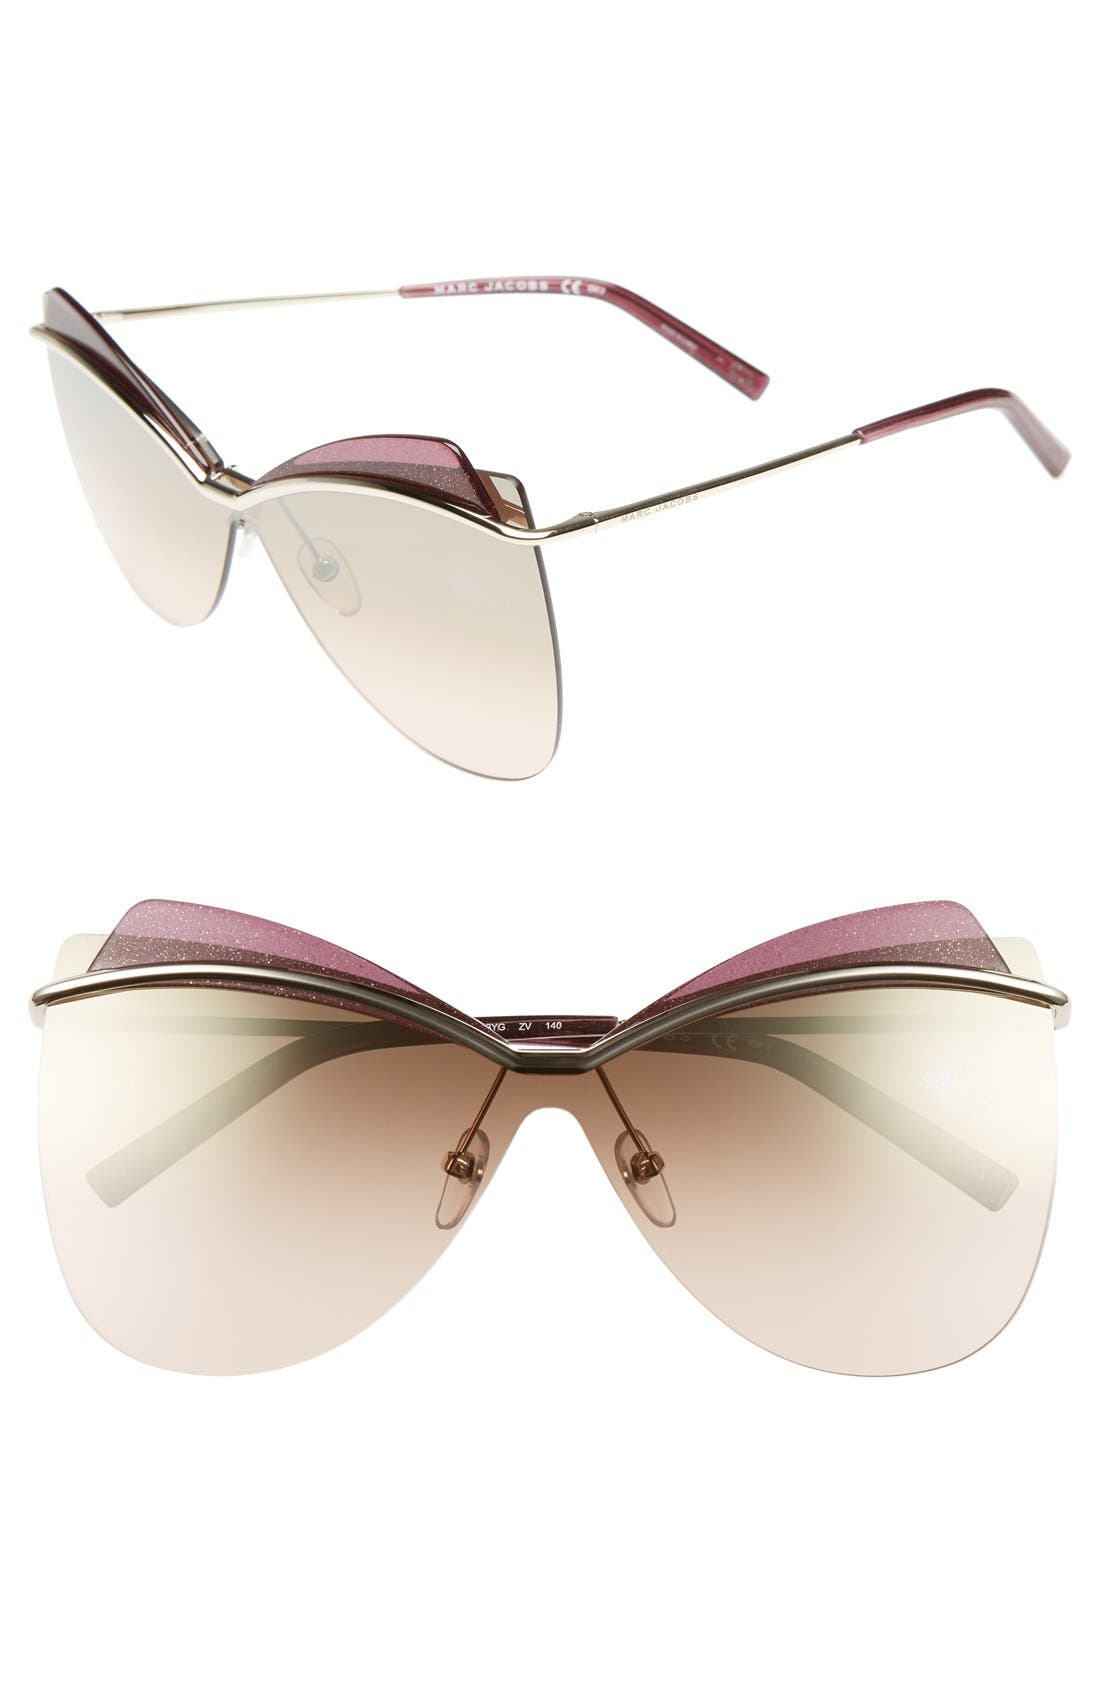 Main Image - MARC JACOBS 67mm Sunglasses